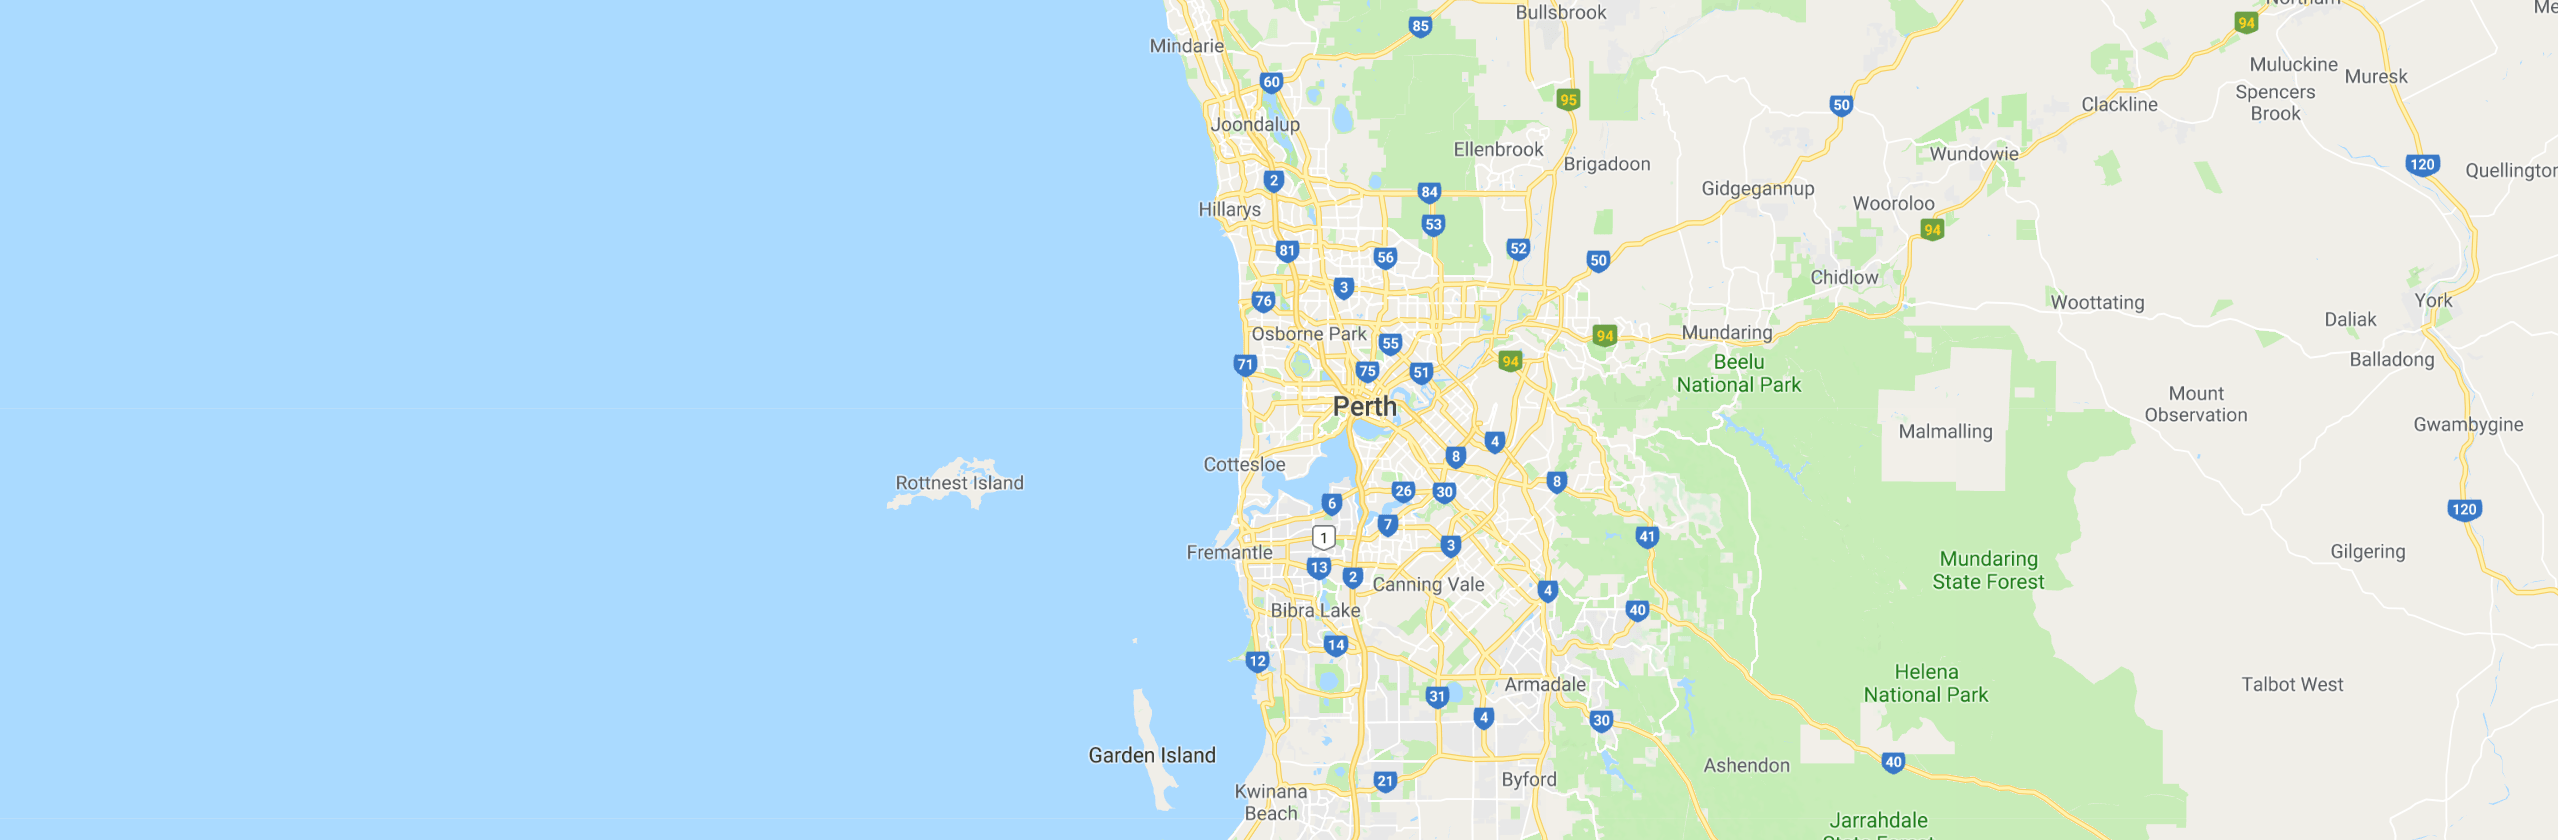 Google Map of Northern Suburbs,Western Australia, Australia